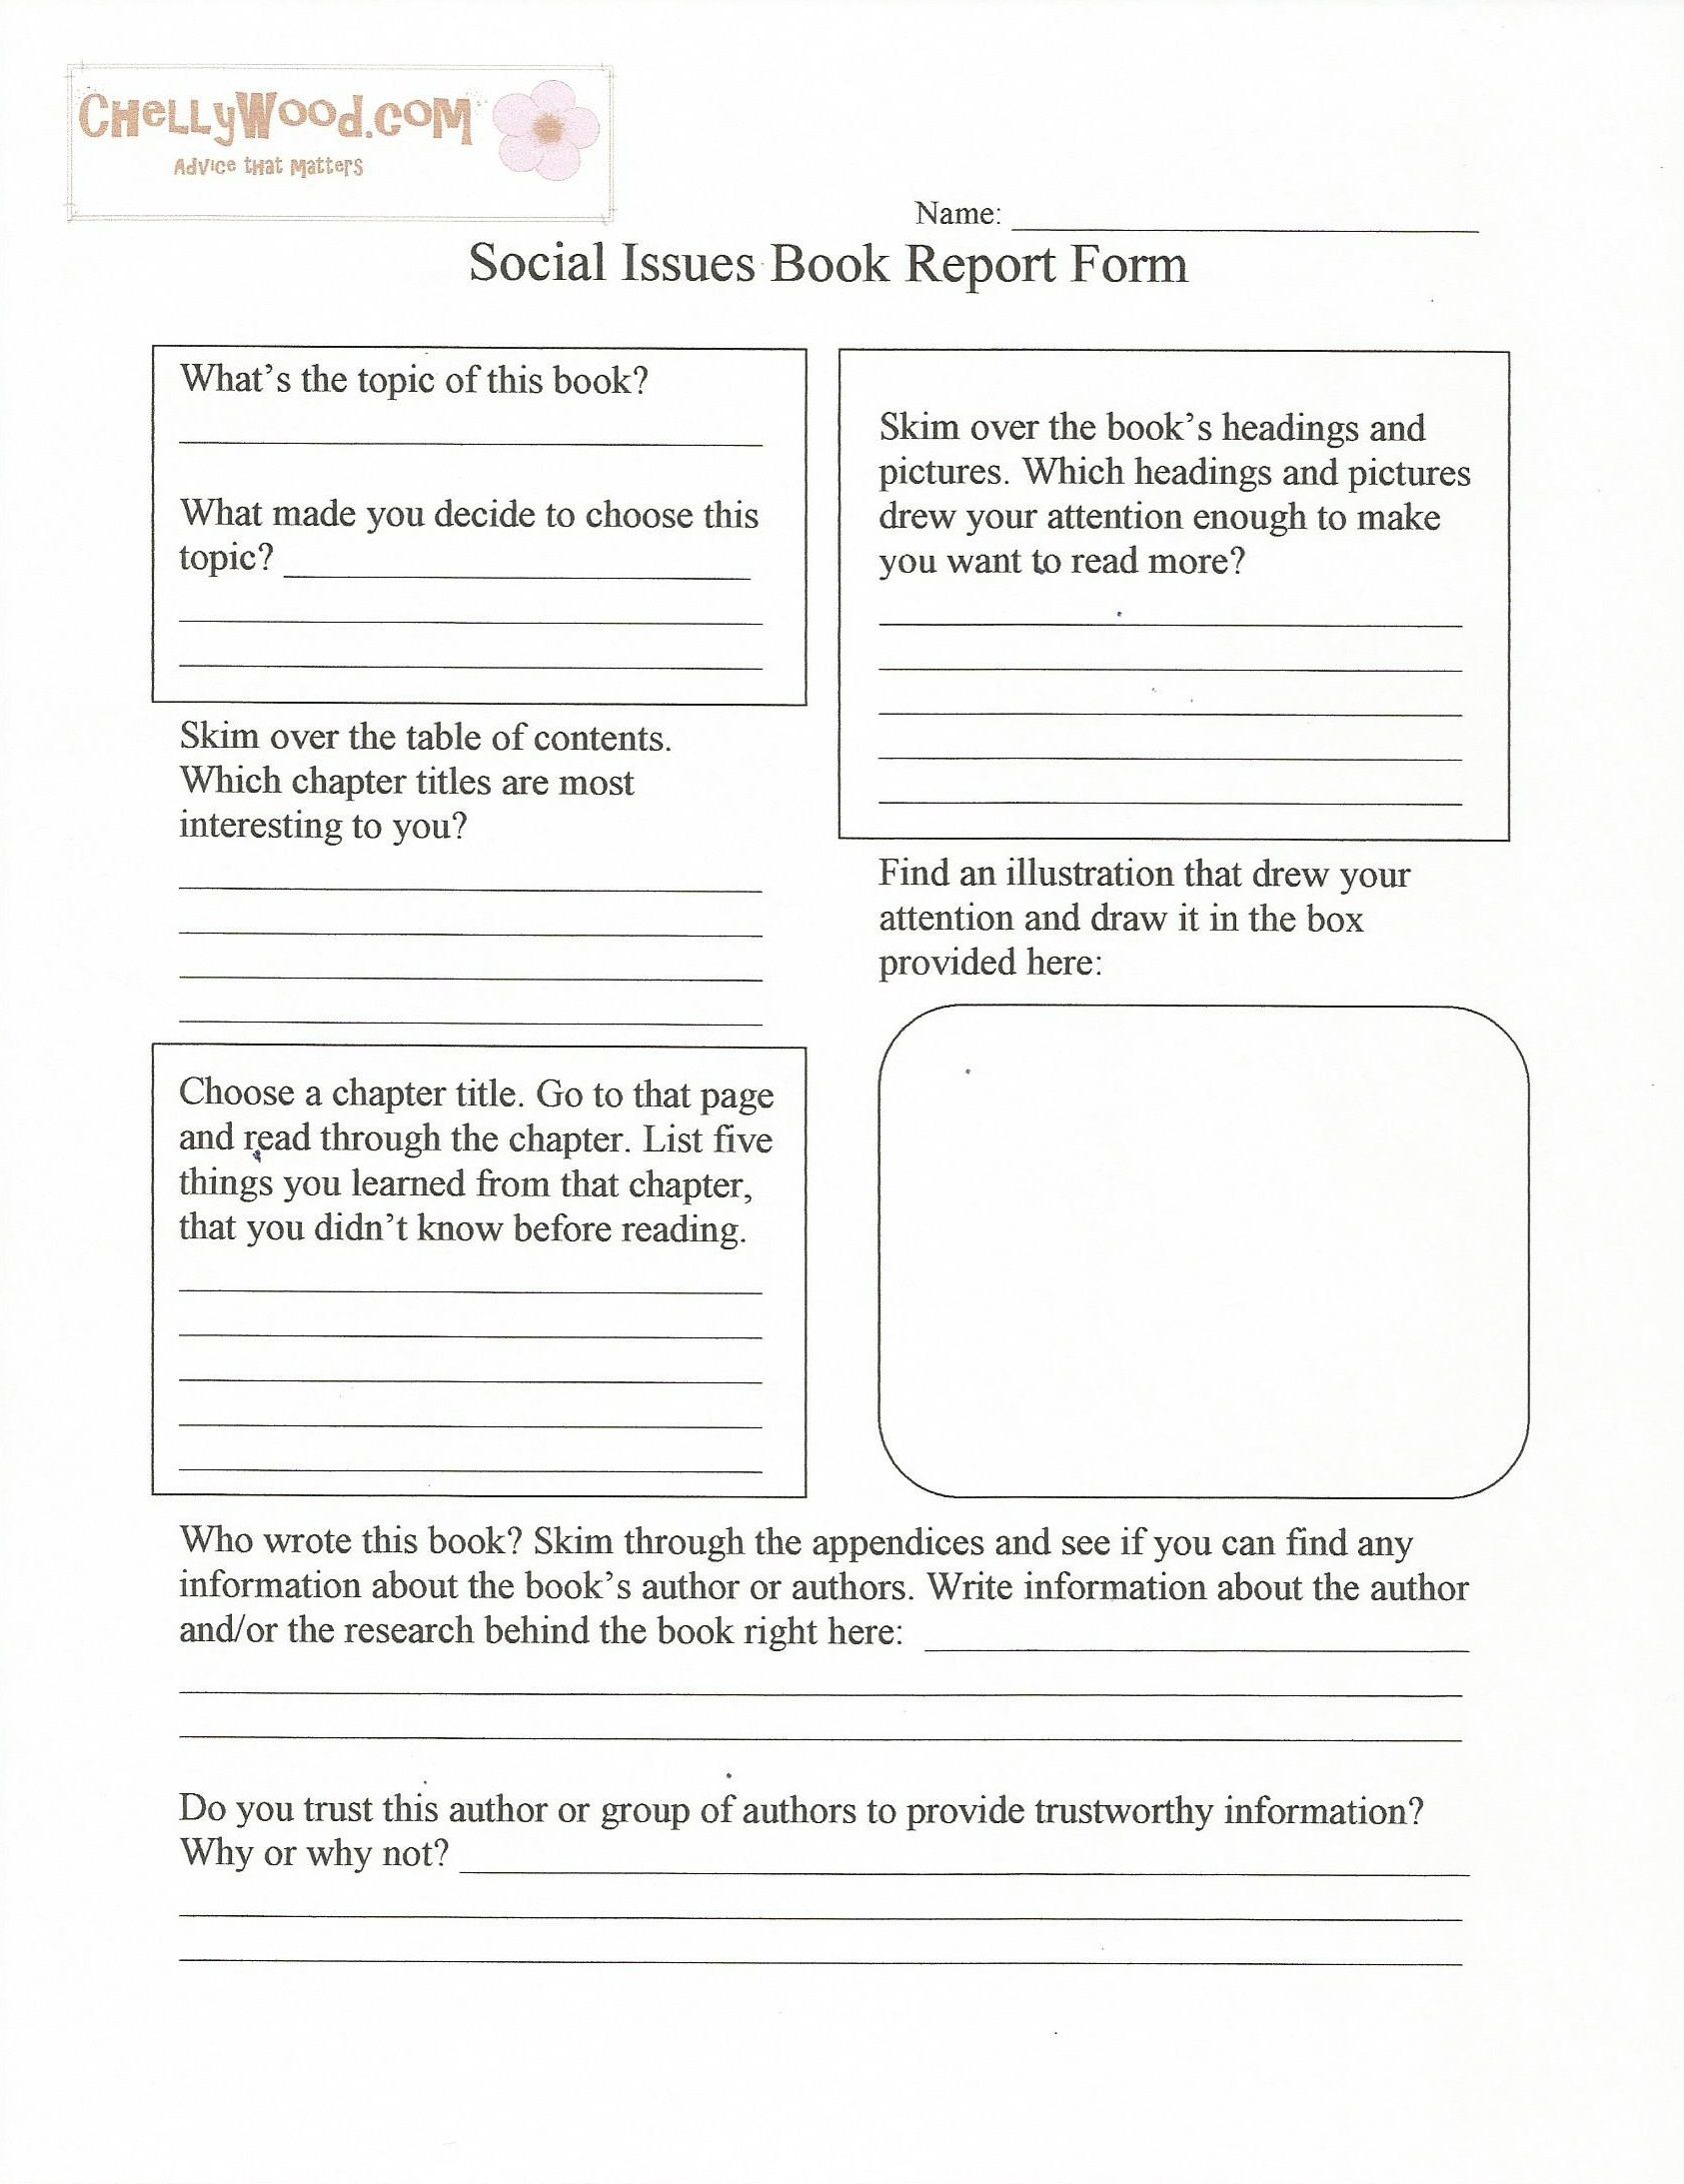 nonfiction social issues book report form pg 1 comes from my educational website englishemporium - Social Issue Essay Example